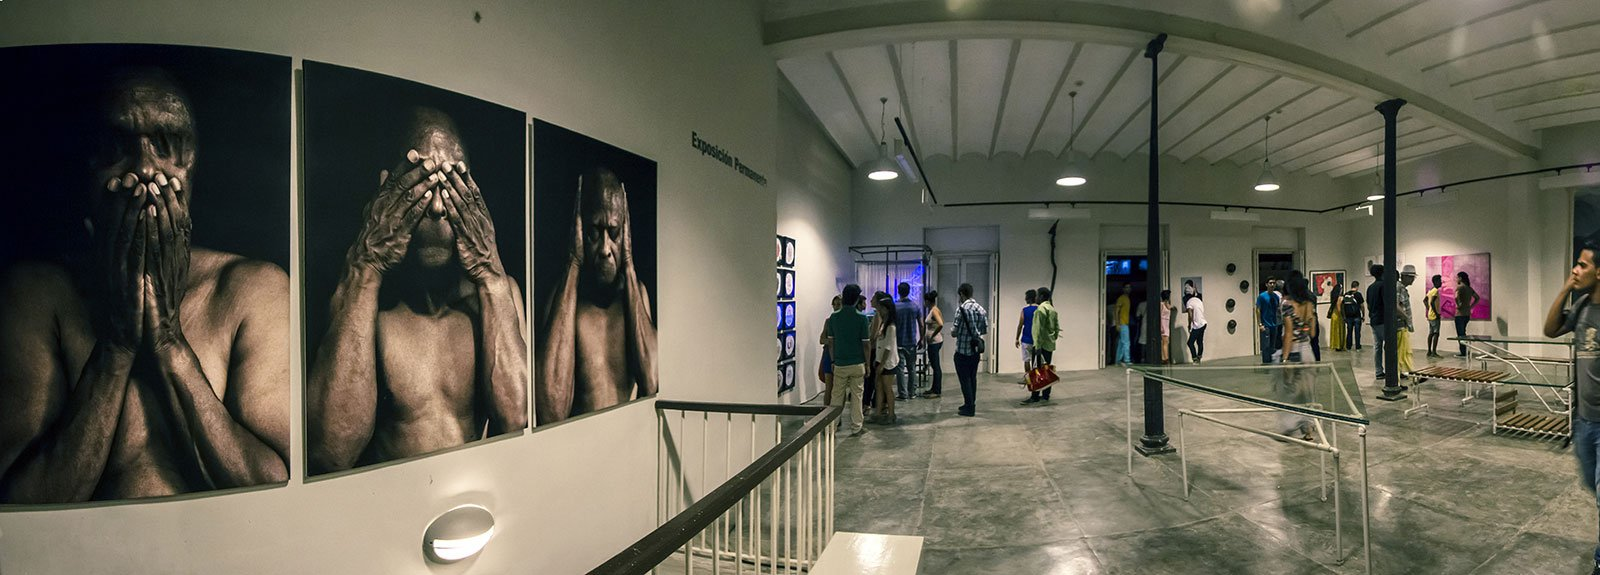 3  pictures of a man on the left and the gallery with other pieces and people on the right